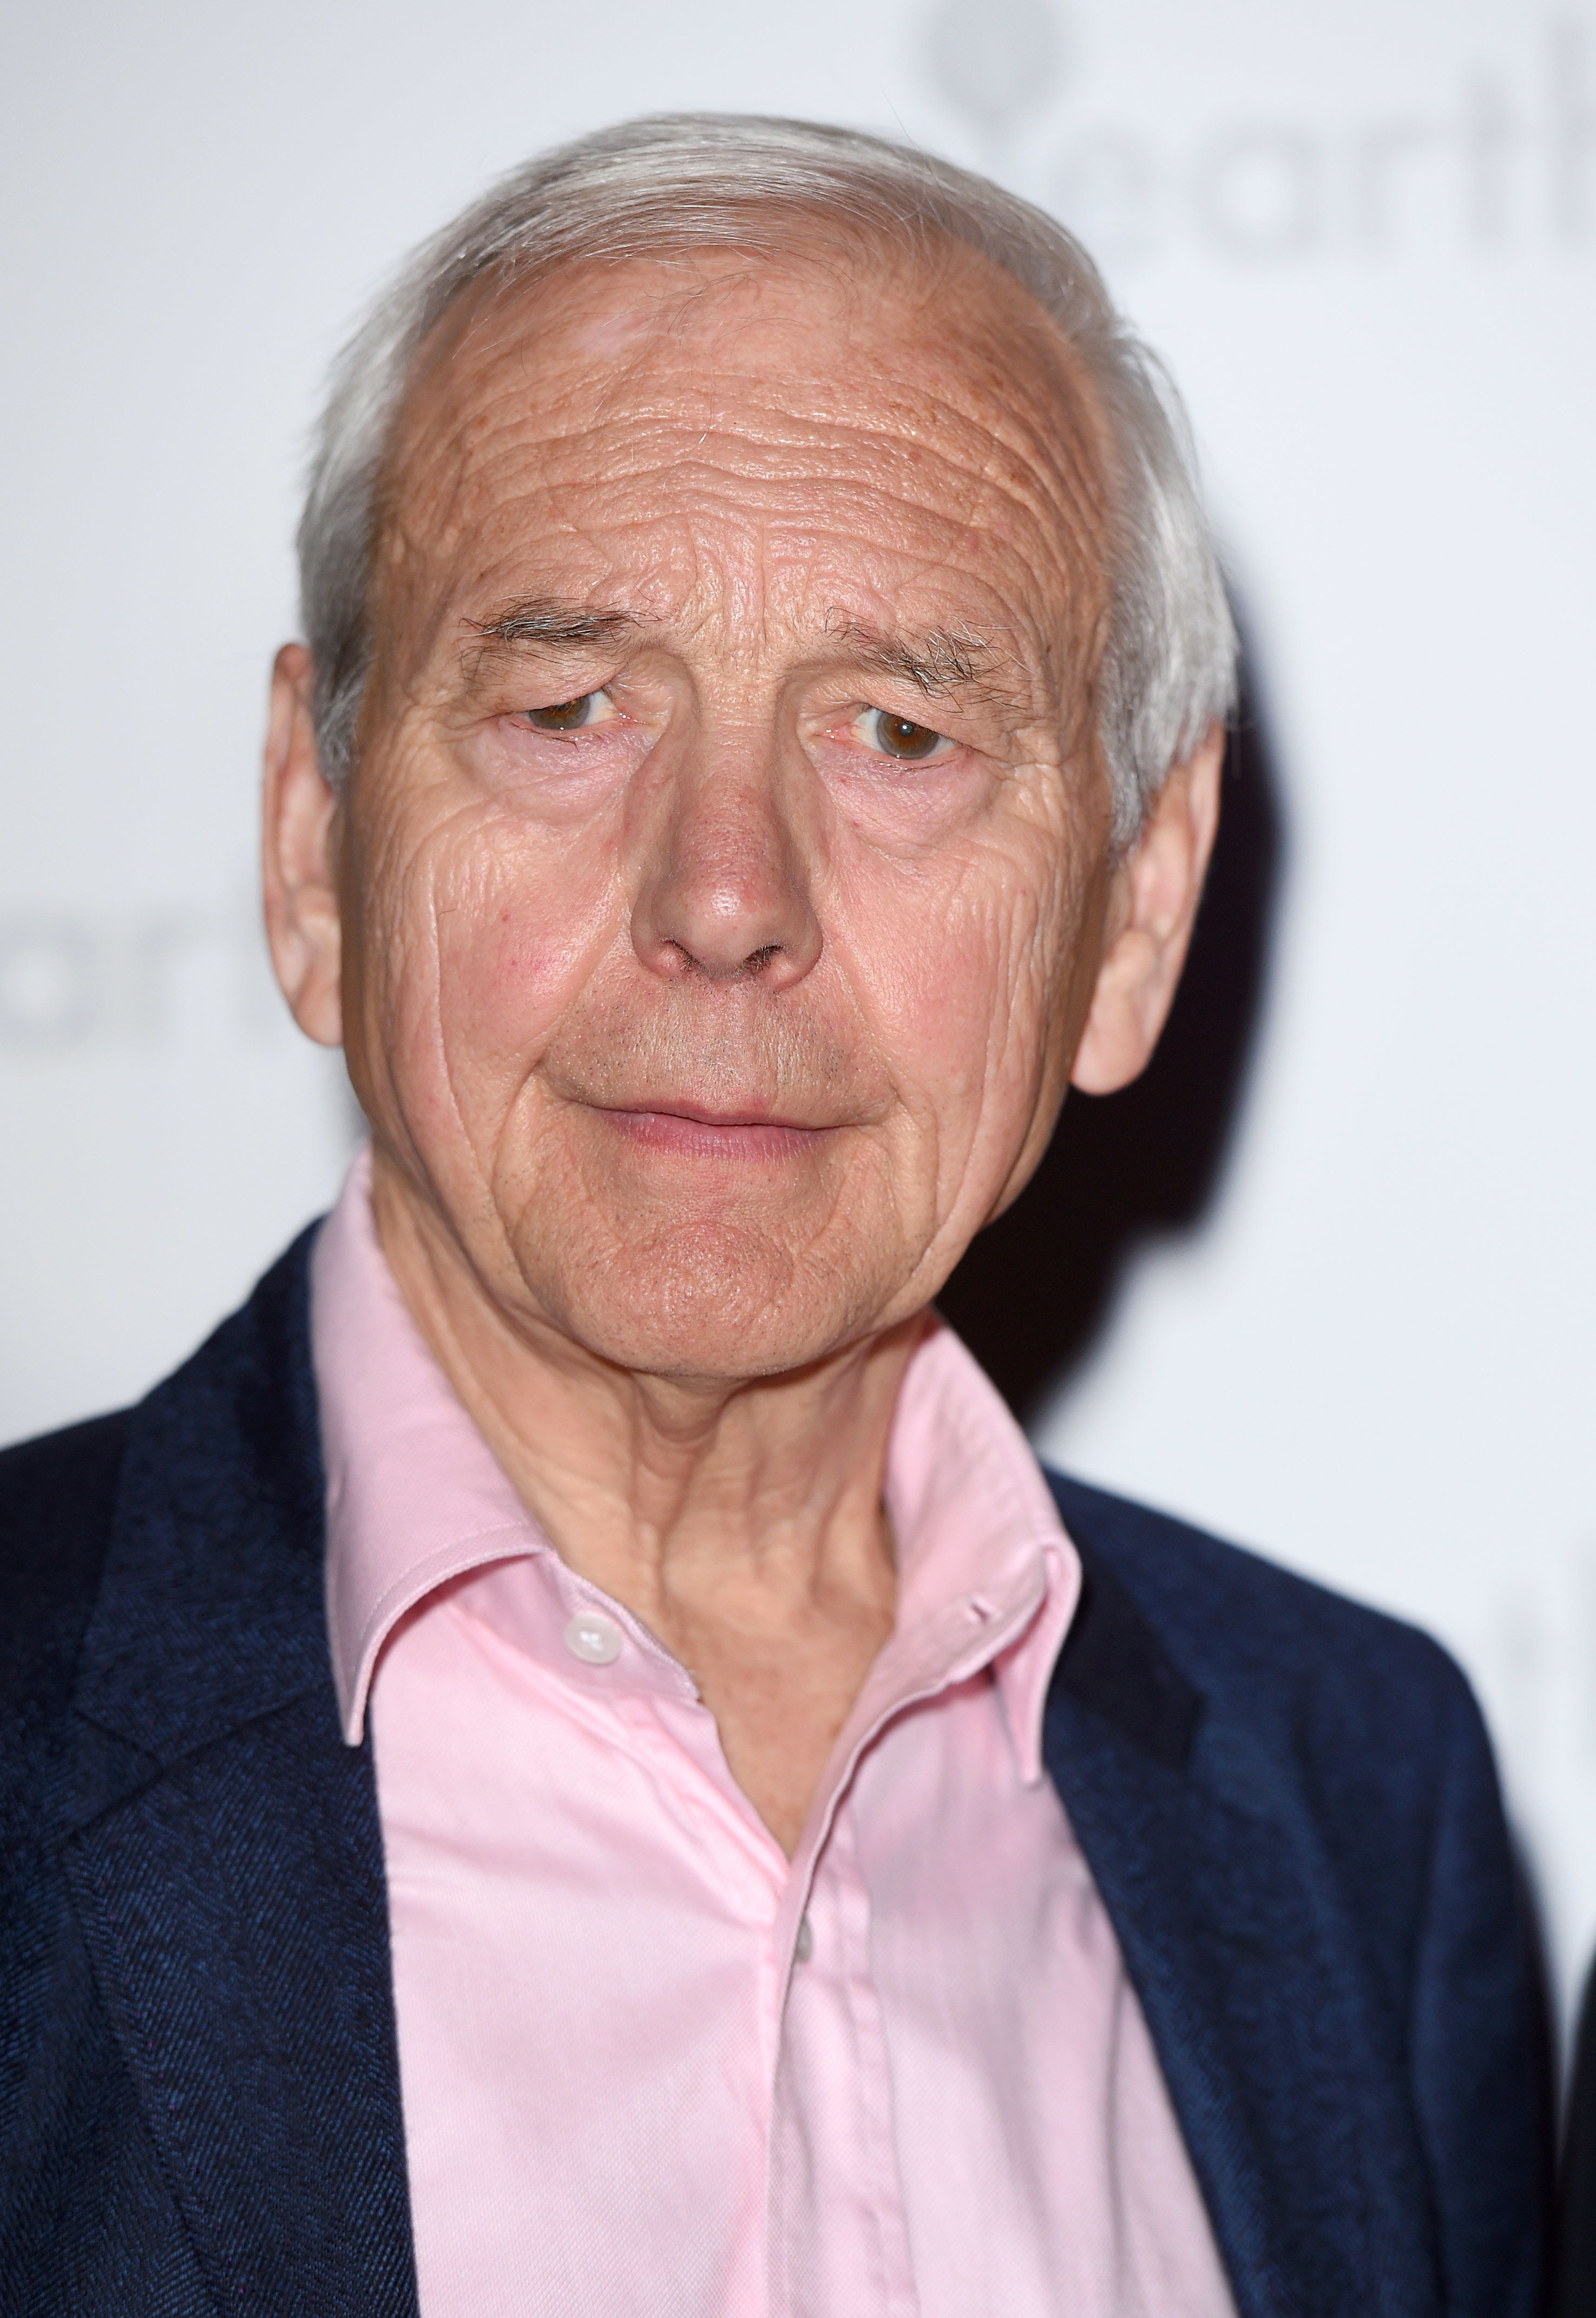 The Moment MP Turns The Tables On John Humphrys Over Carrie